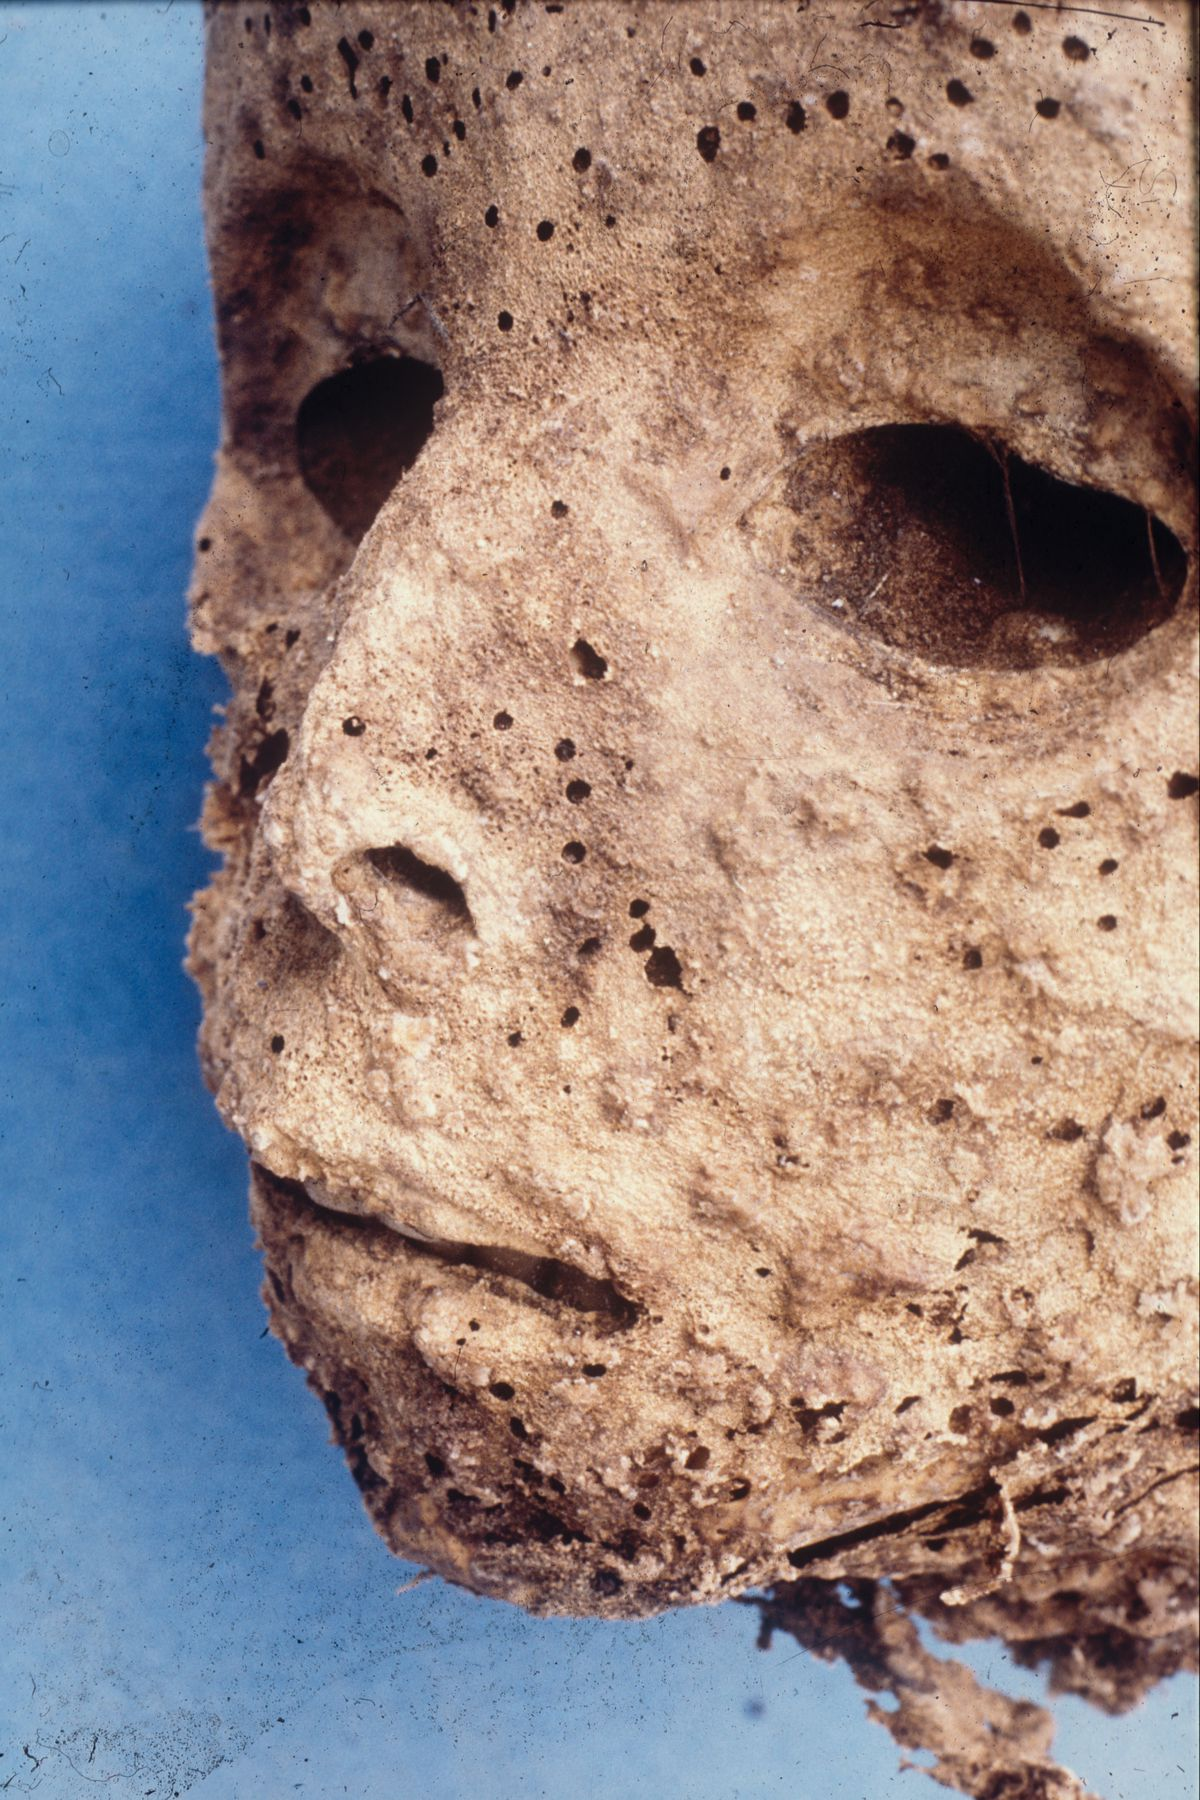 The mummy of a small boy buried during the 1500s in Italy was covered in a rash, once thought to be smallpox.